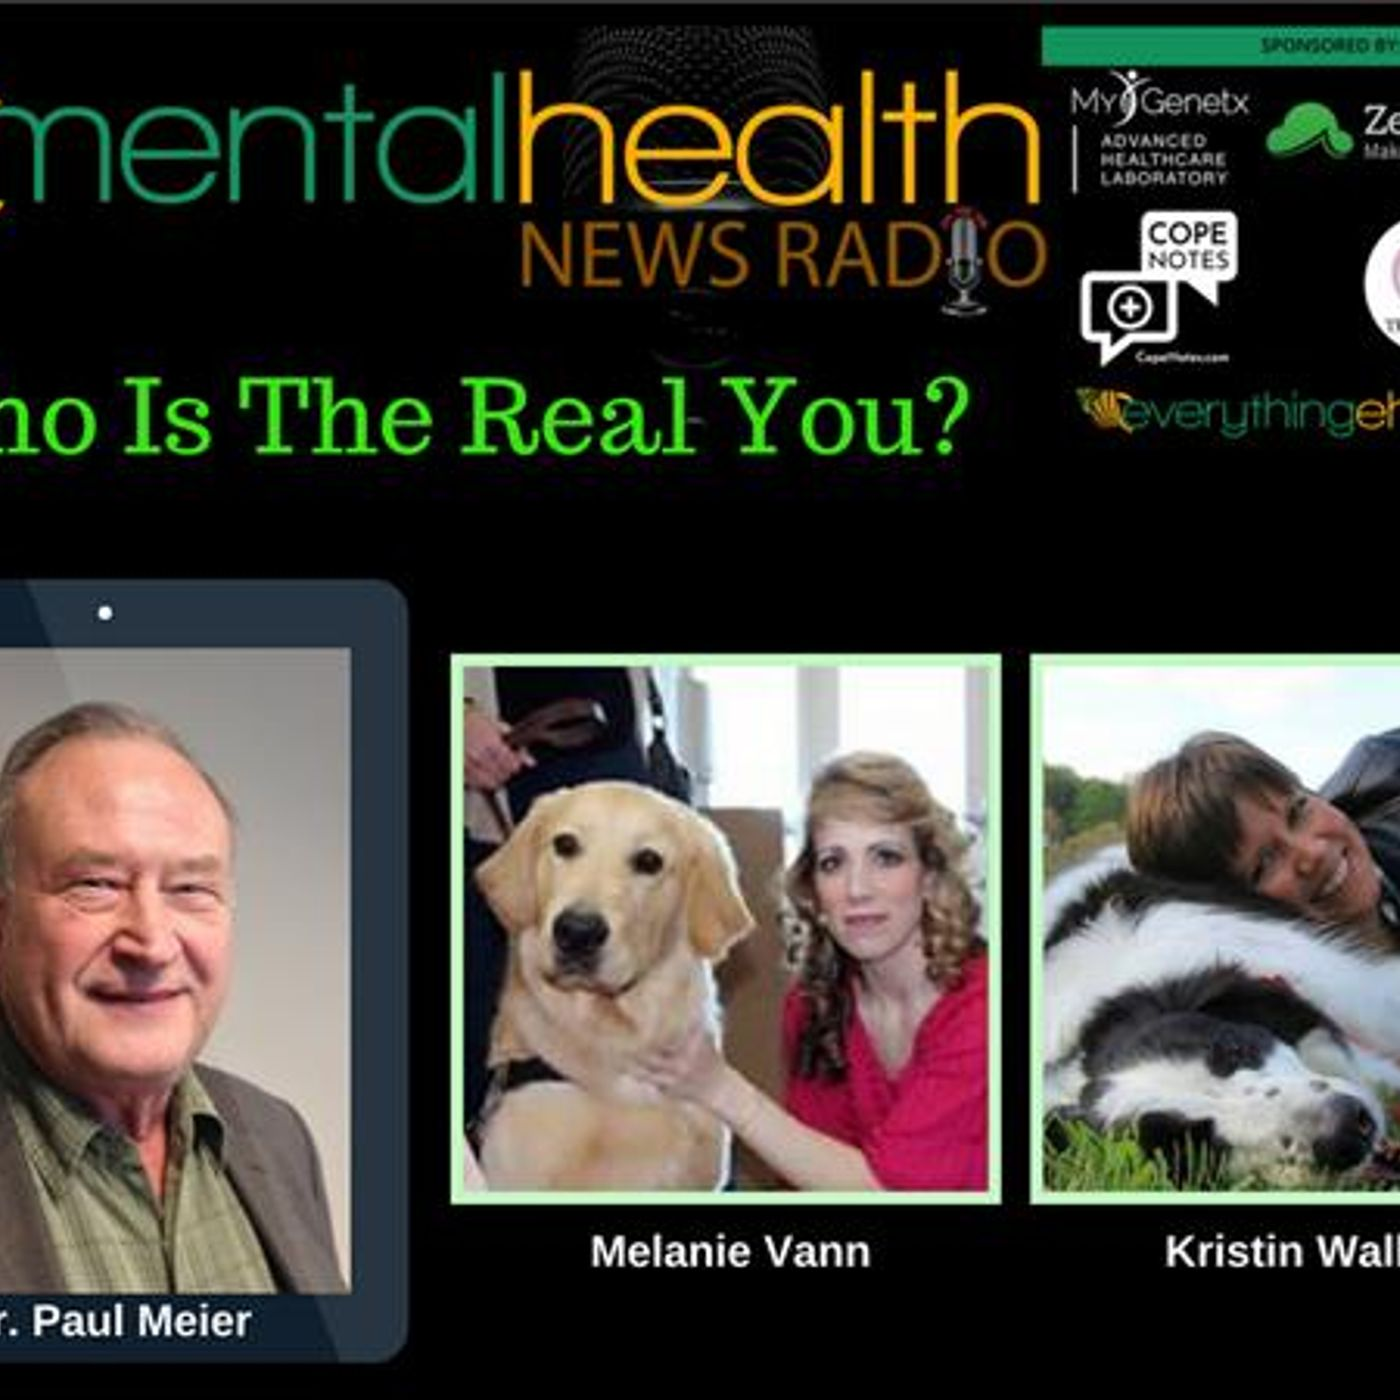 Mental Health News Radio - Round Table Discussions with Dr. Paul Meier: Who Is the Real You?